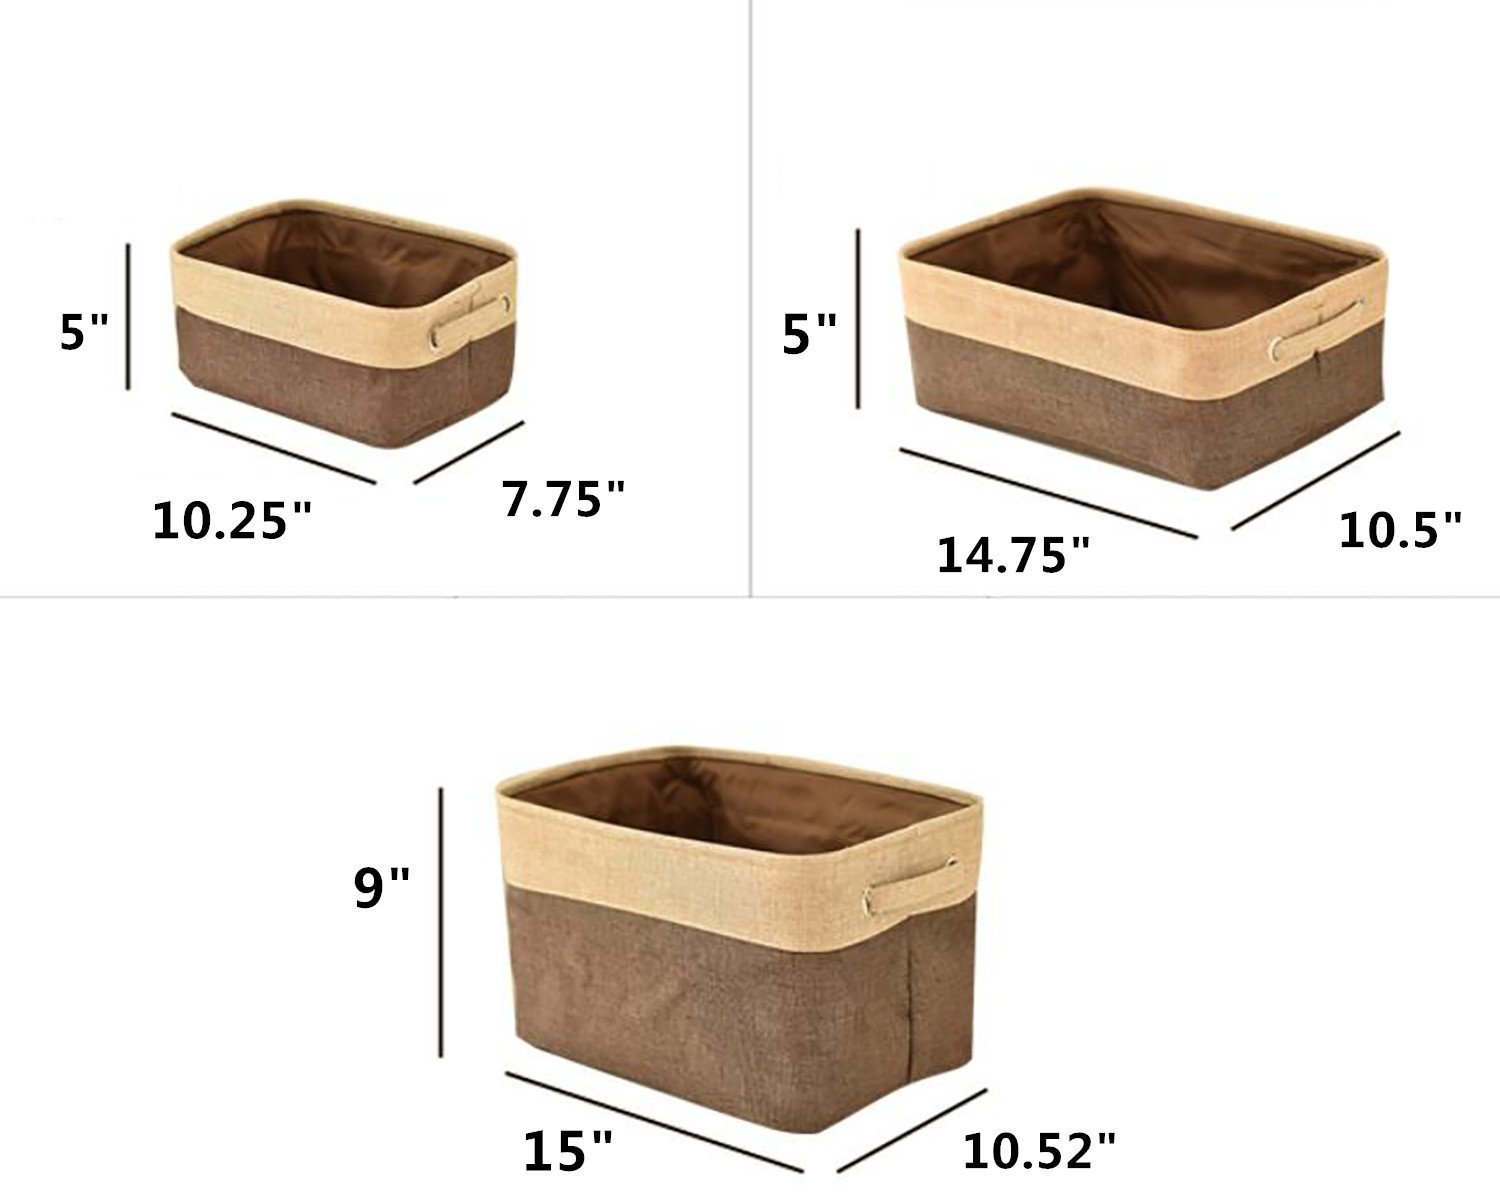 Ieoyoubei Canvas Fabric Collapsible Cube Bin Set with Handles Storage Bin Organizer Basket Toy Organizer Hampers,Pet Toy Storing,(L M S) 3-Pack for Home Office Closet,Double Layer Fabric Brown/Beige - Uses: Products can be used for debris storage, clothing storage, multi-functional products. thick/large Handle for easy slide in and pull out of shelves or cabinet,Collapsible for easy storage if not in use. Children's storage bags can be hung on the walls, Protects contents against moisture and dirt. Also suitable for waste sorting. - living-room-decor, living-room, baskets-storage - 61BOJLDnIlL -